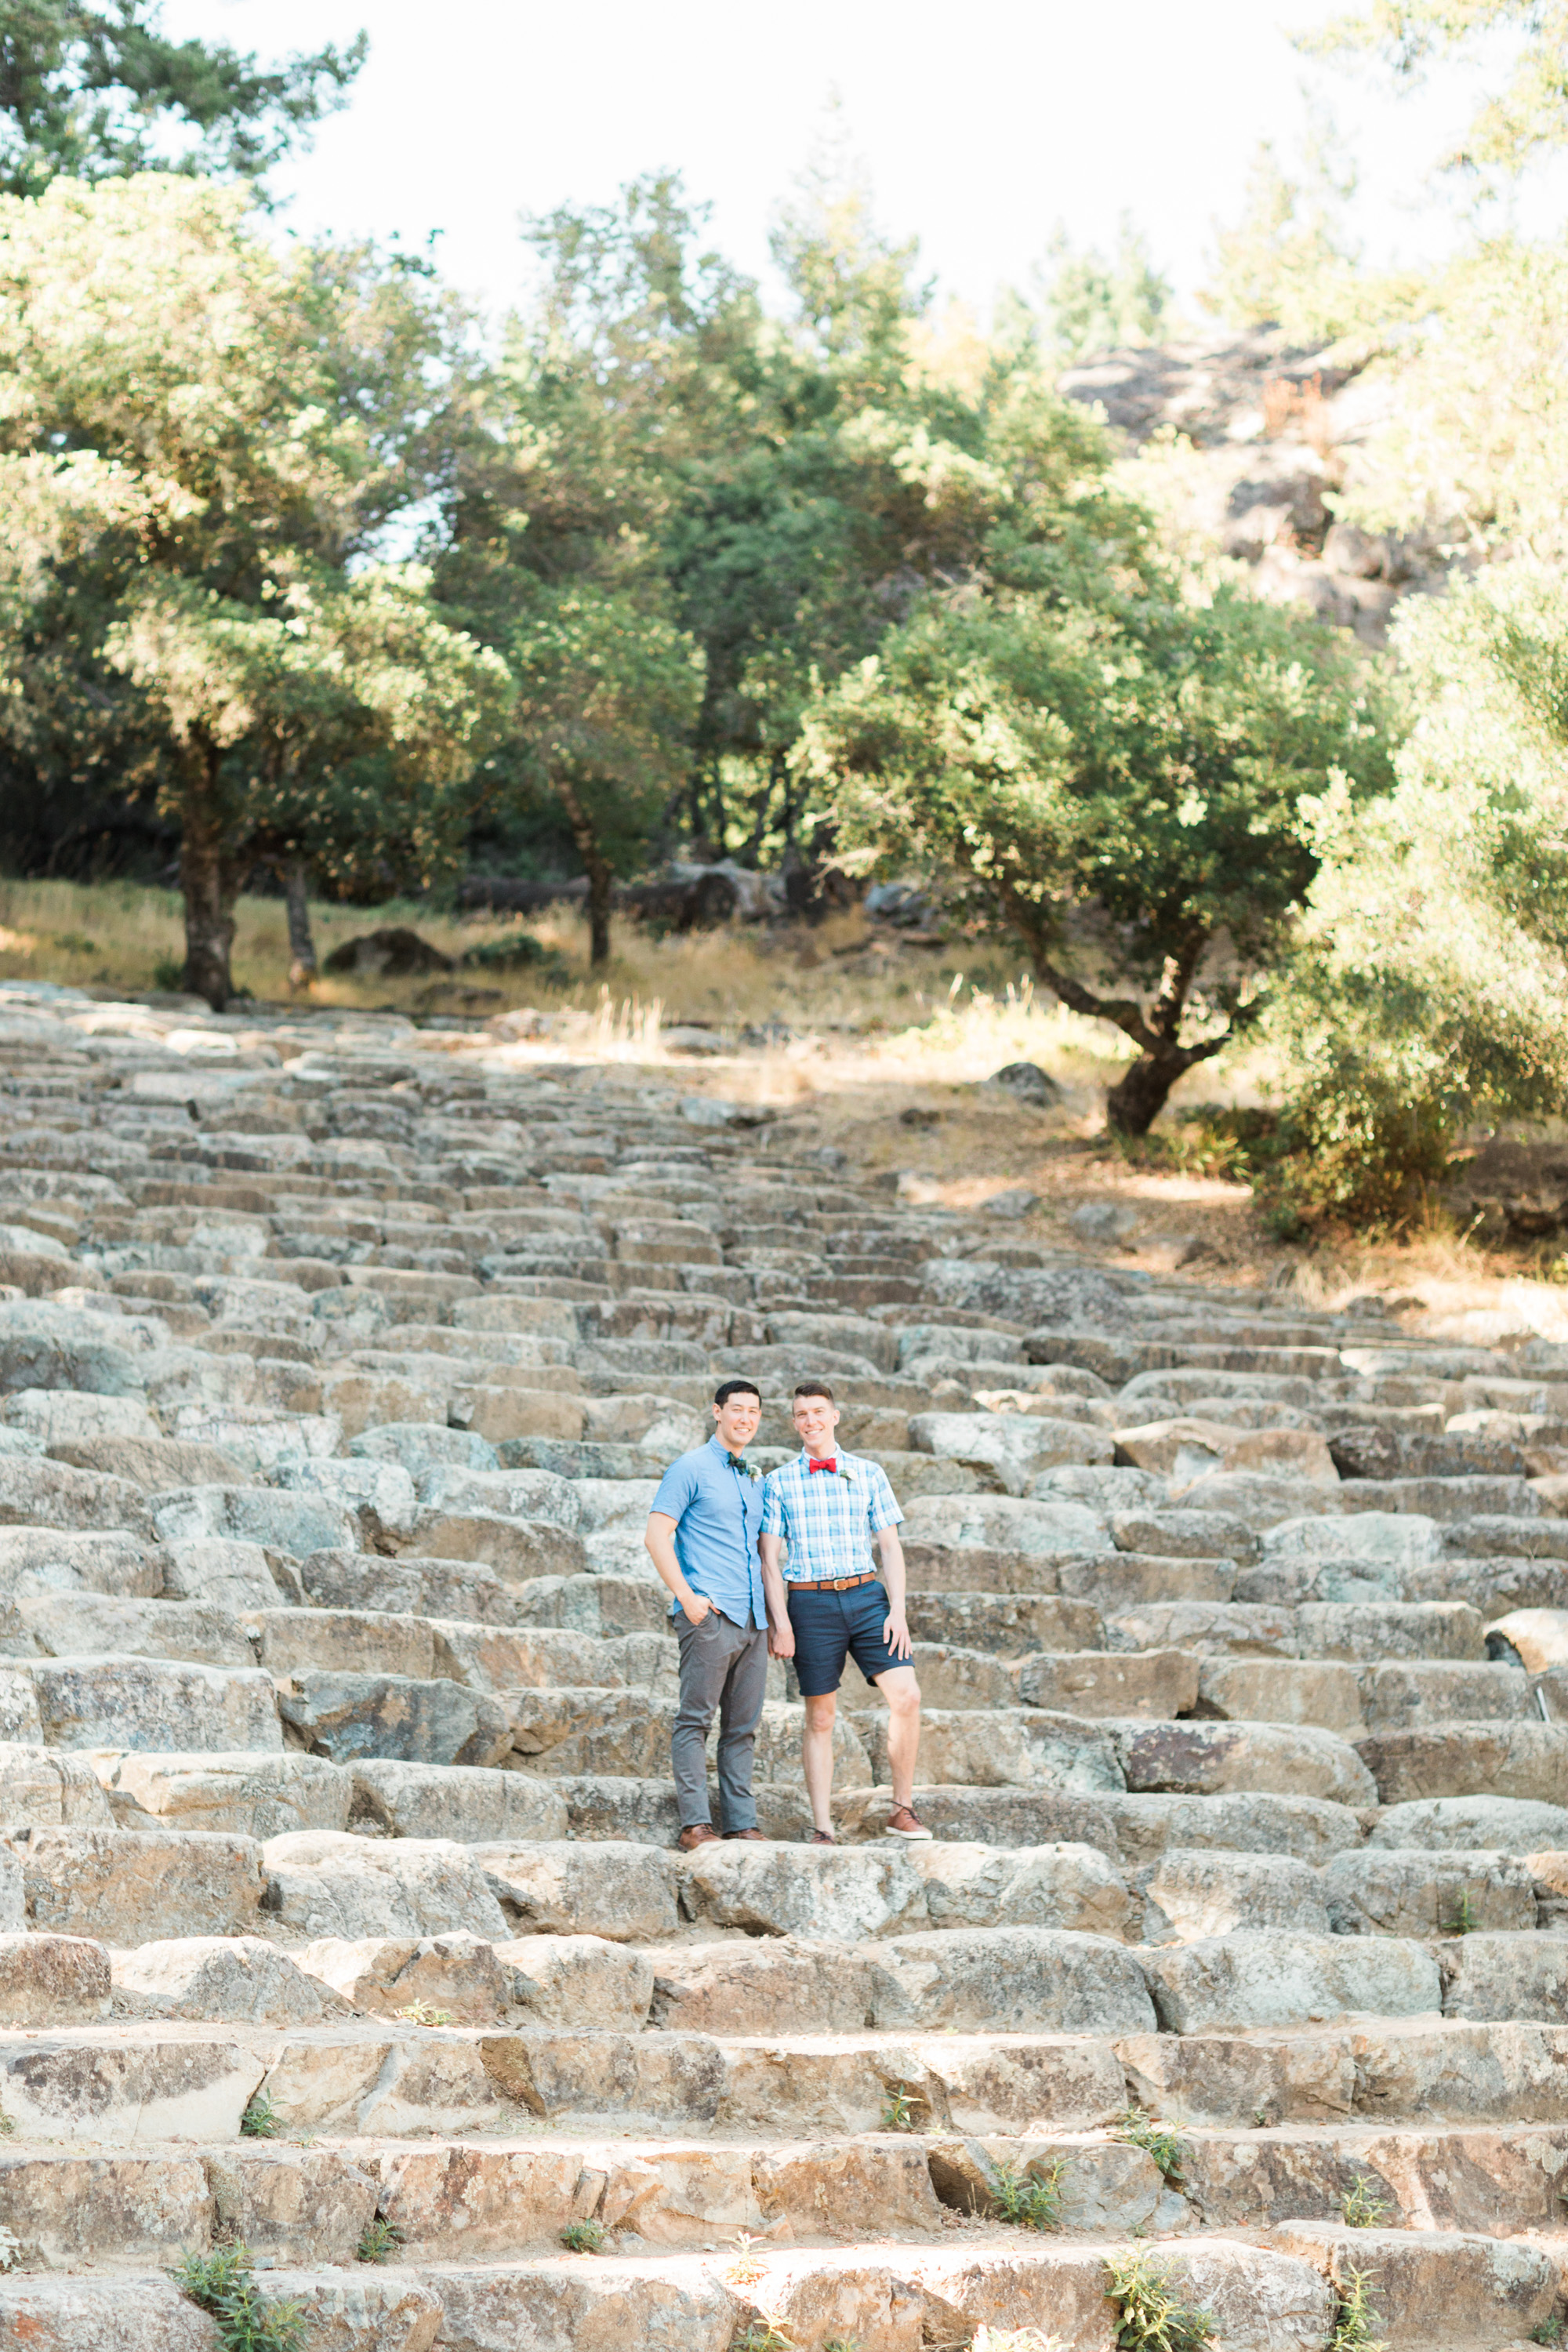 Two handsome grooms on their wedding day at the Mount Tamalpais amphitheater